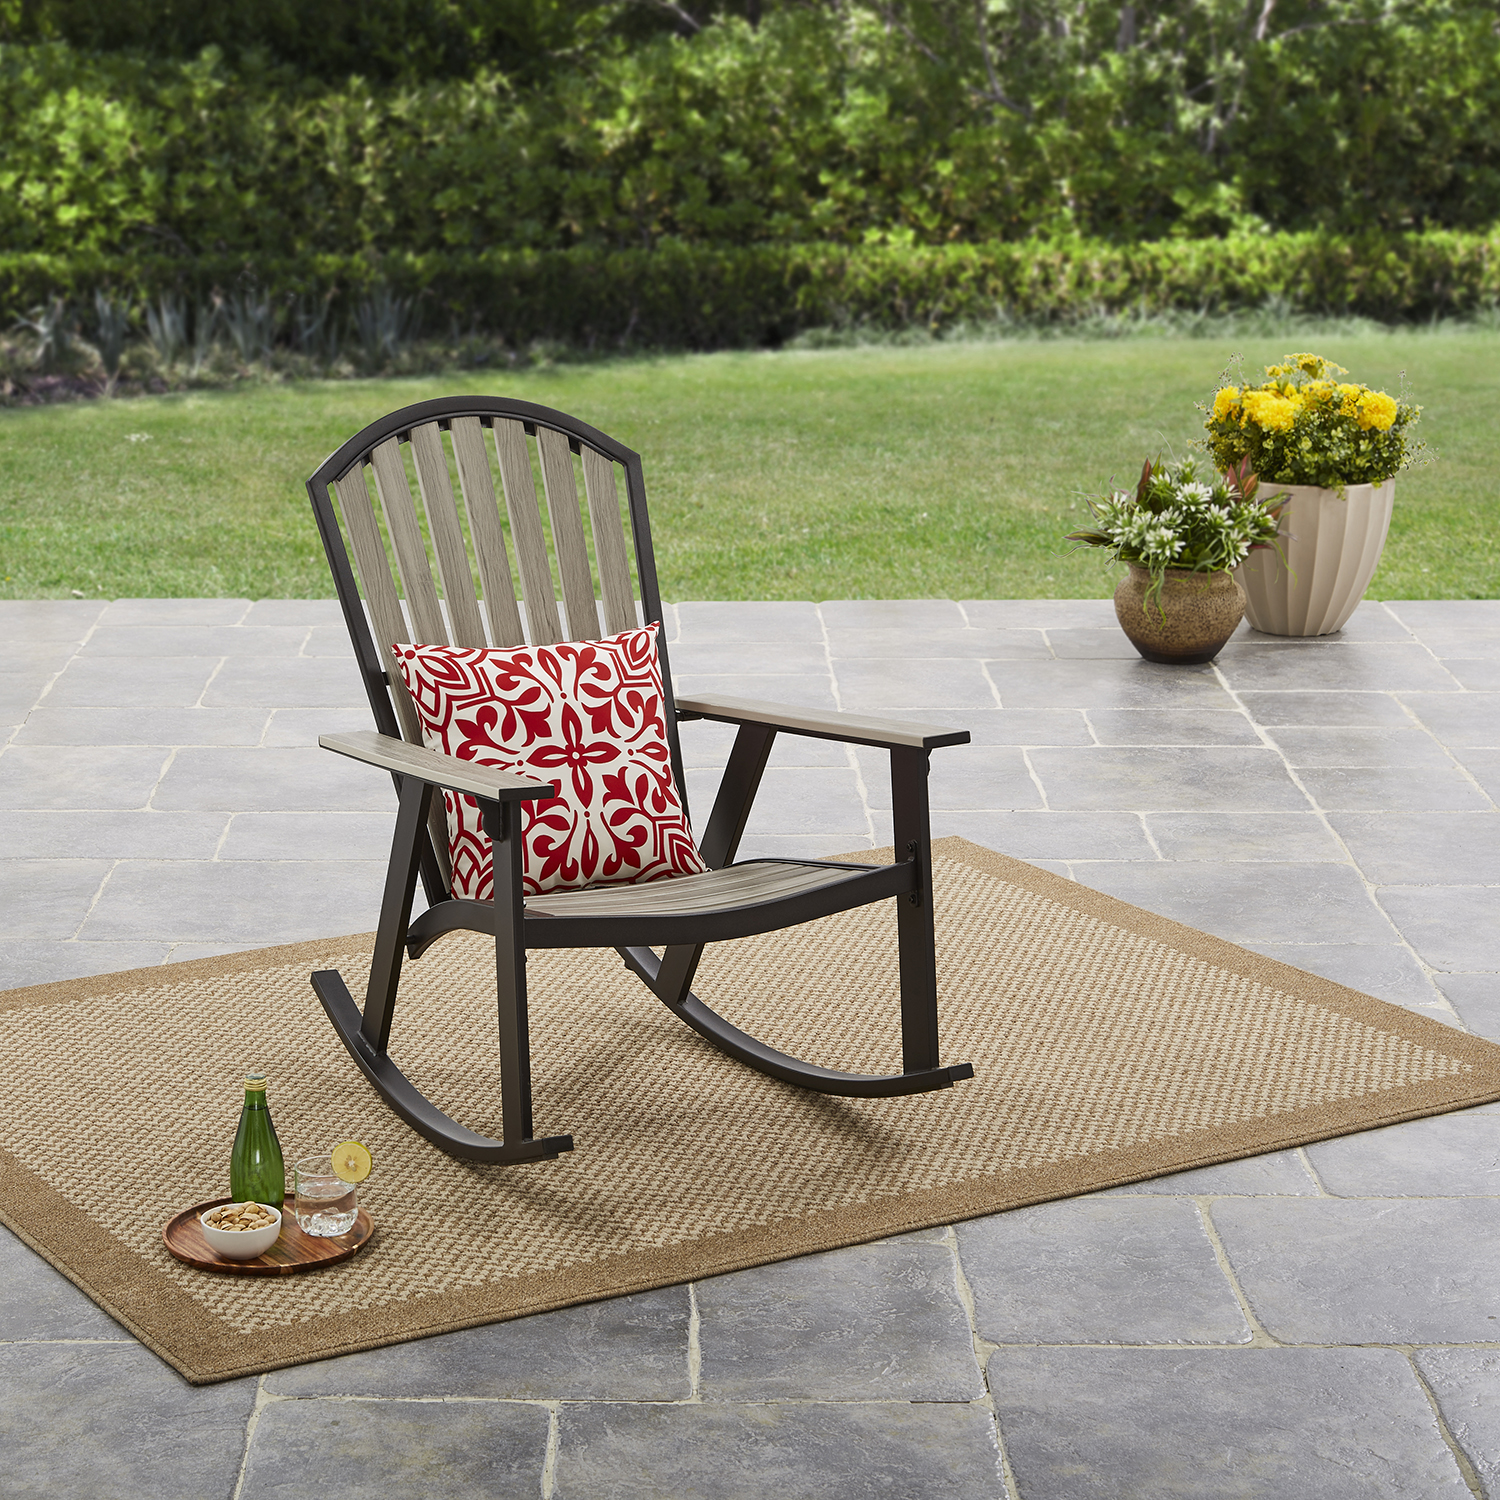 Mainstays Springview Hills Resin Outdoor Adirondack Rocking Chair